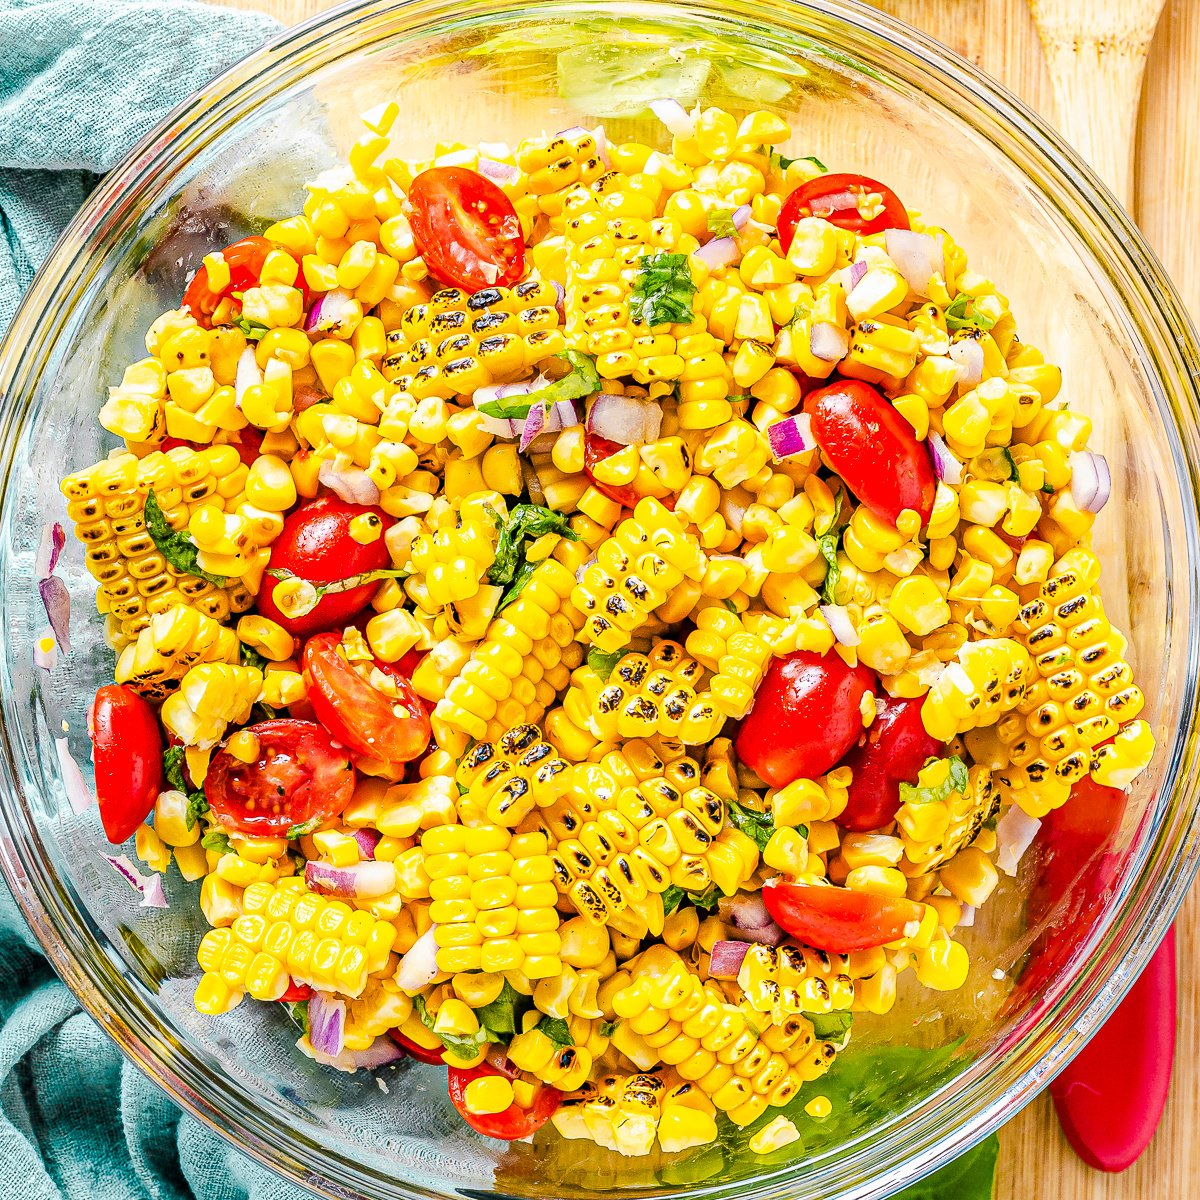 Square image of Corn and Tomato Salad overhead in clear bowl